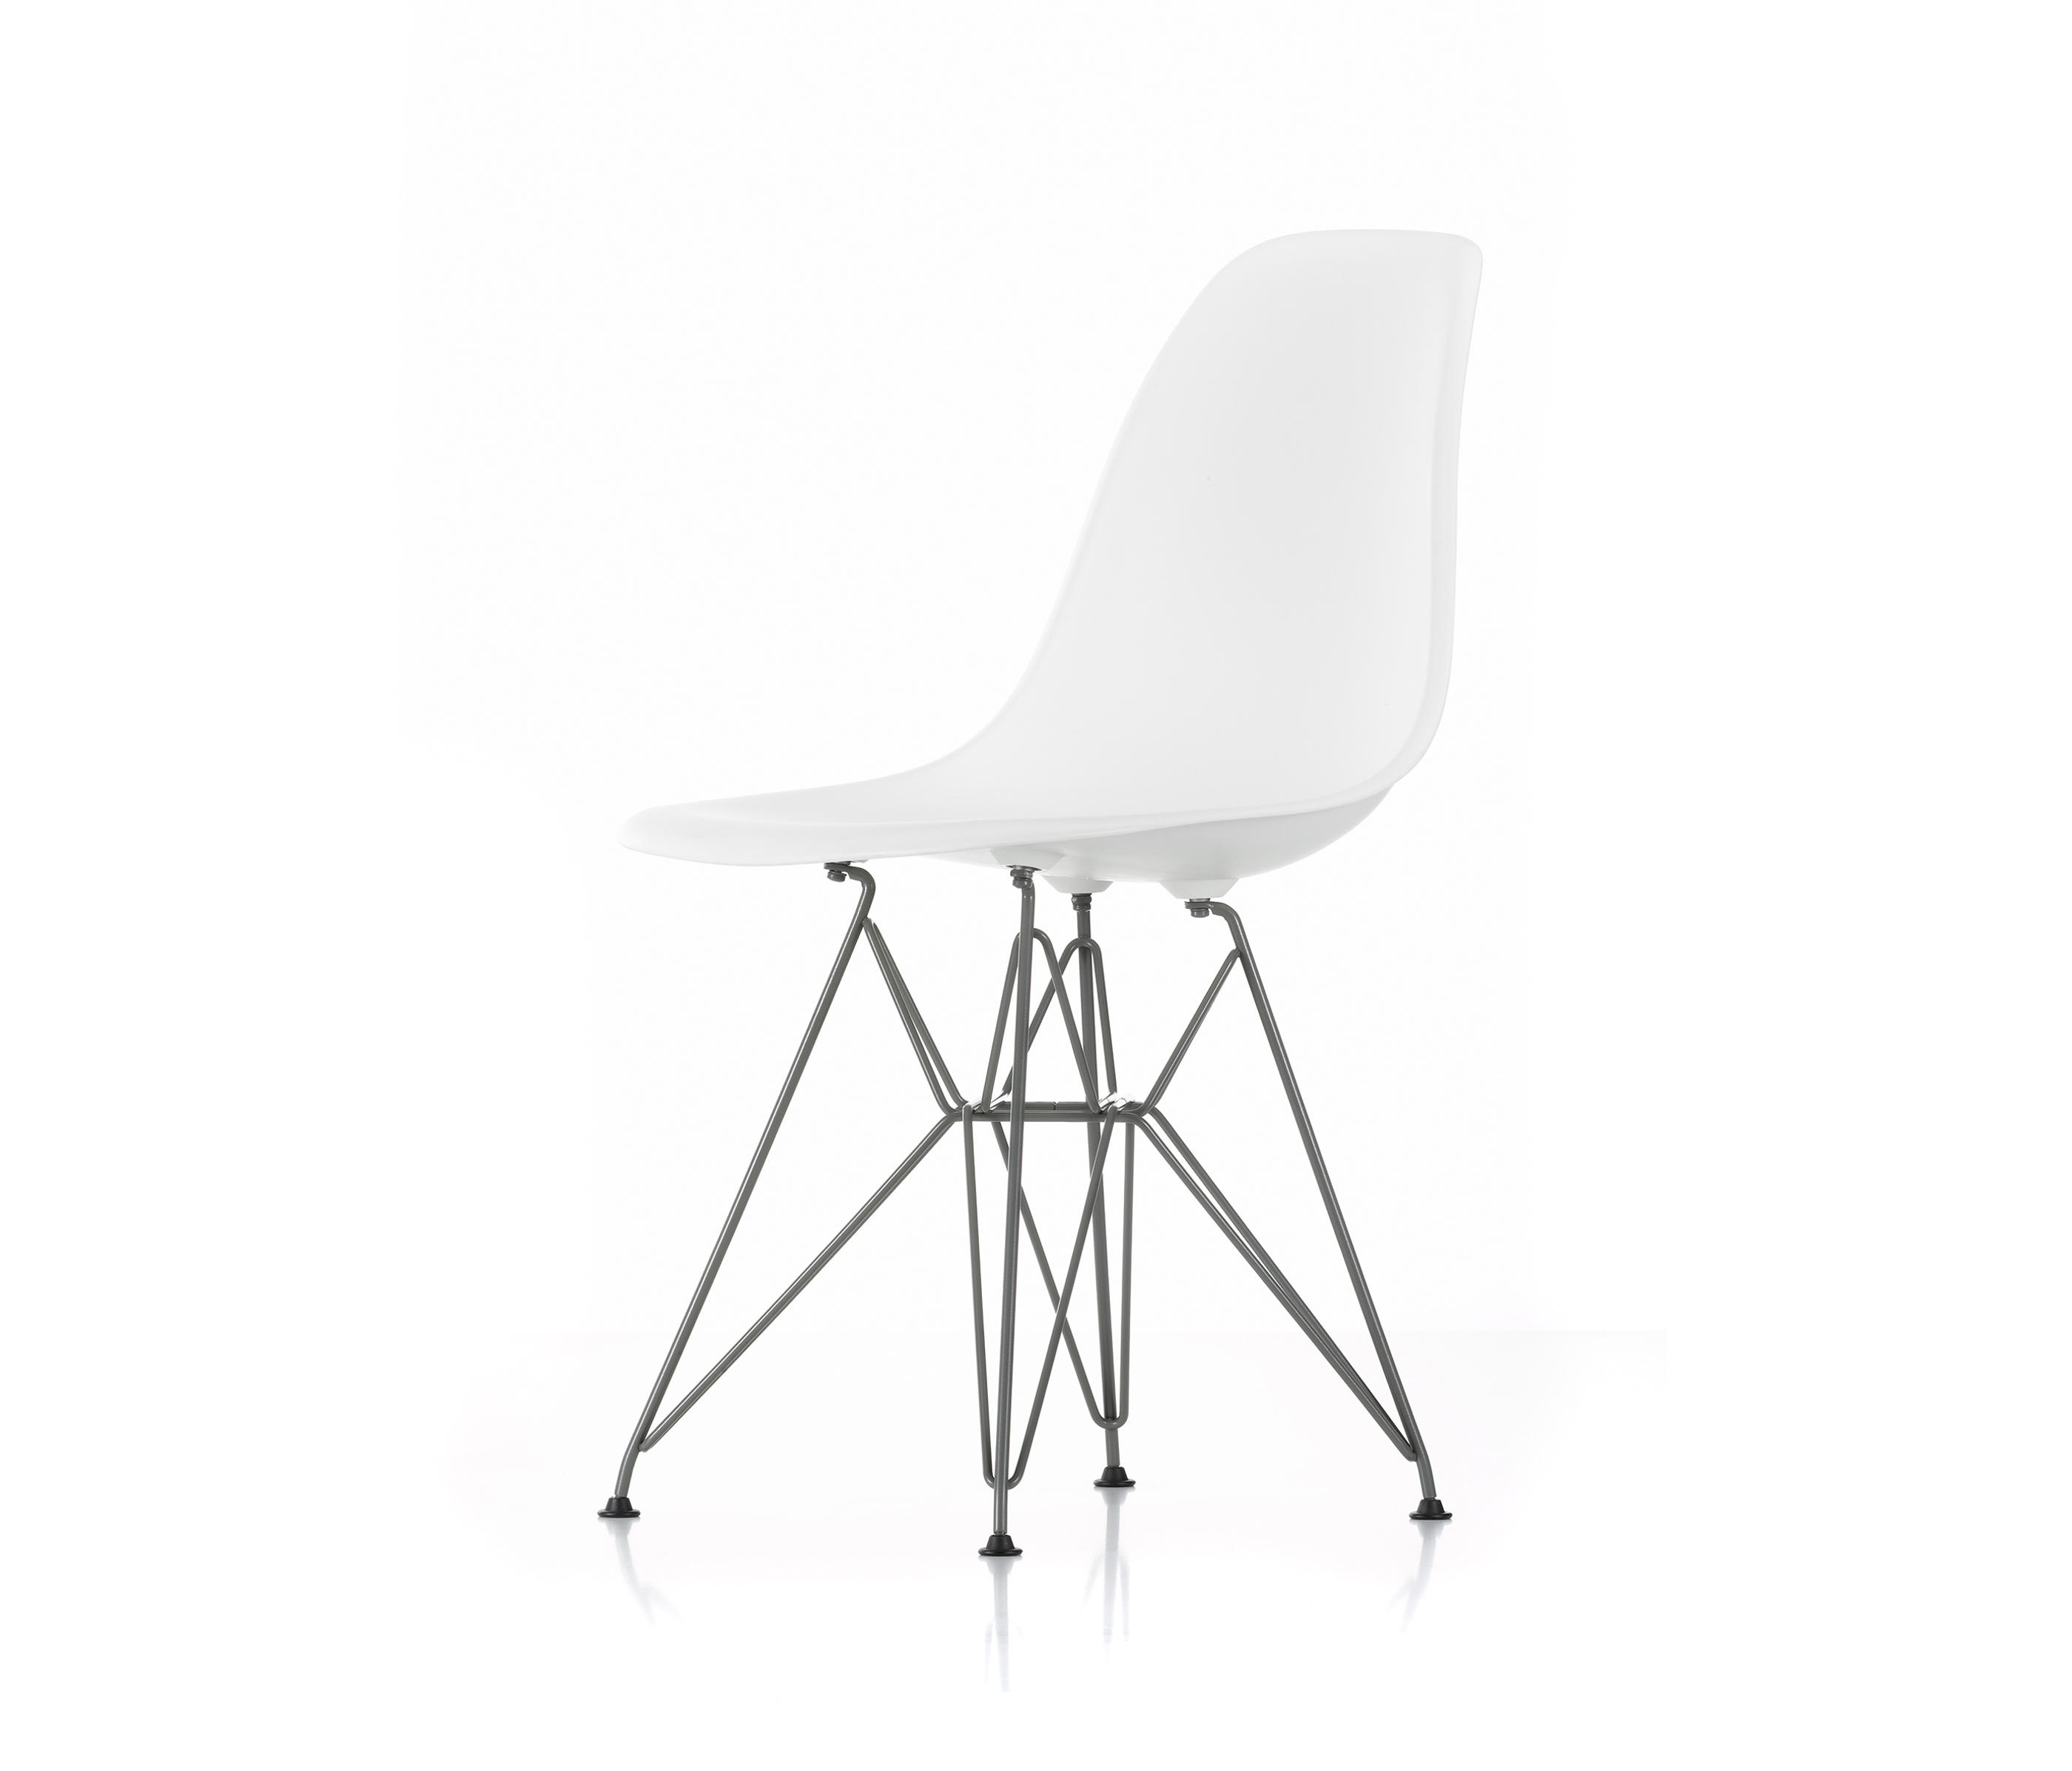 eames plastic side chair dsr multipurpose chairs from. Black Bedroom Furniture Sets. Home Design Ideas